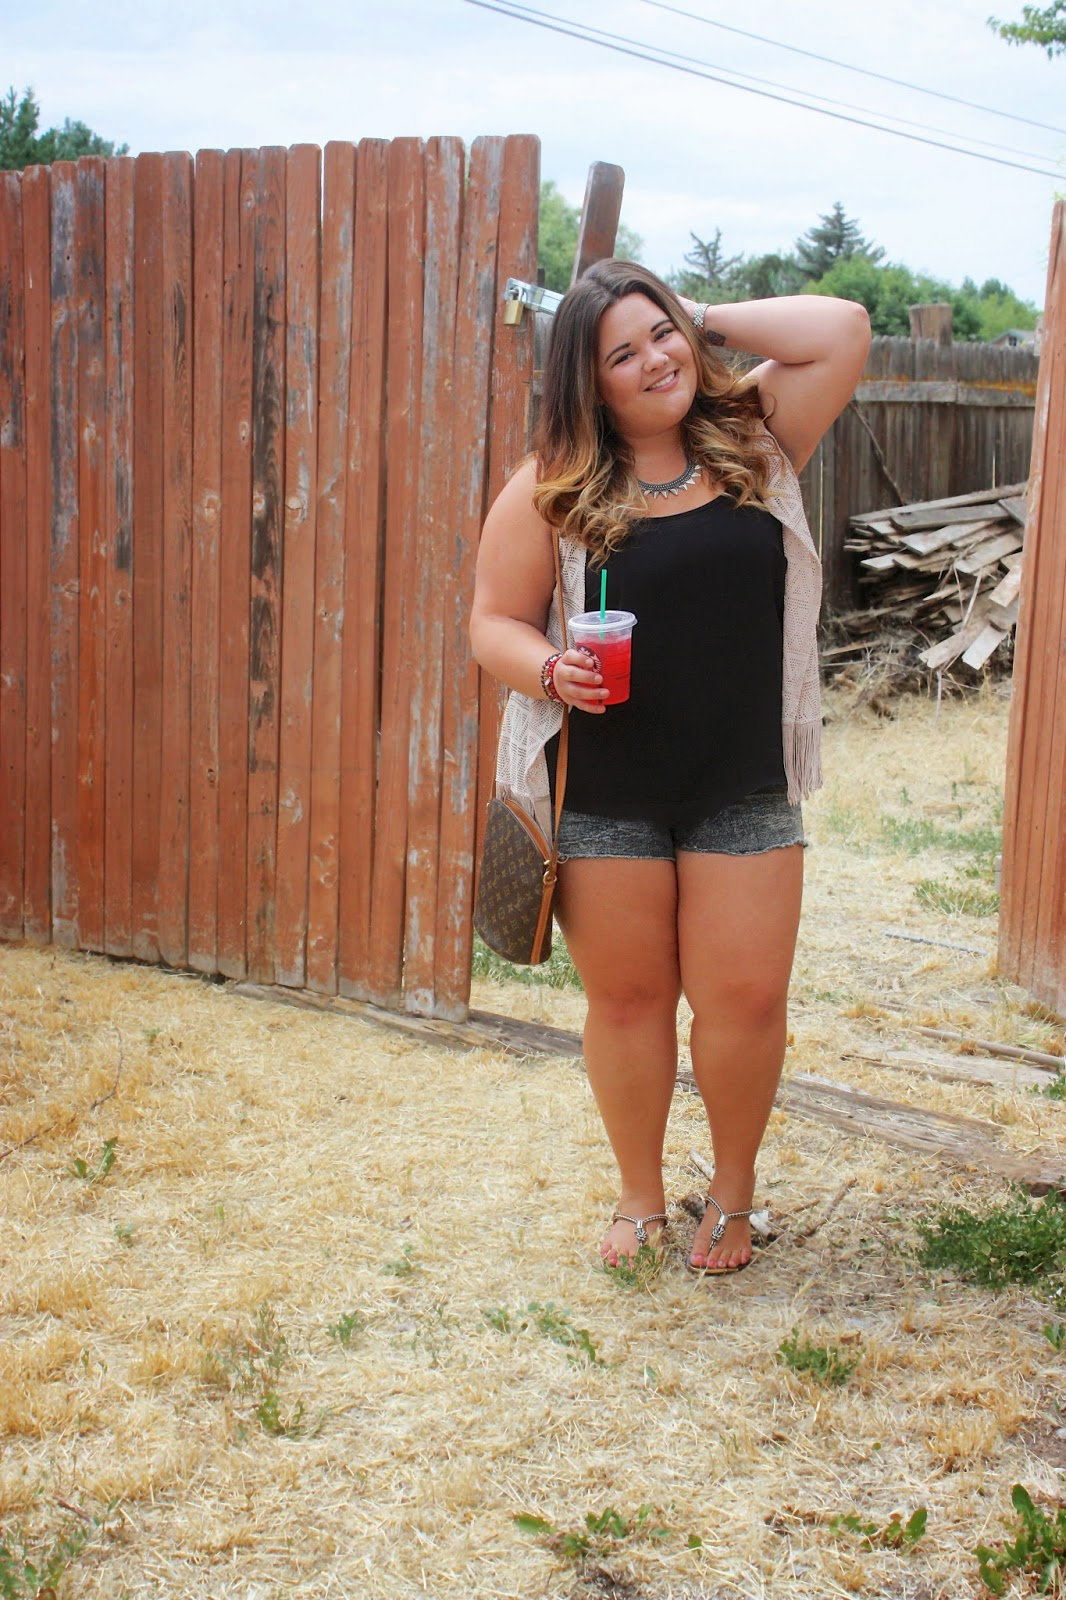 natalie craig, natalie in the city, country style, abandoned house, spikes, BKE, Buckle, Daytrip, Forever 21 plus size, plus size fashion blogger, style, OOTD, nose ring, shorts, fringe, tribal, bling, starbucks, passion tea, Louis Vuitton, mix and match jewelry, ombre, curly hair